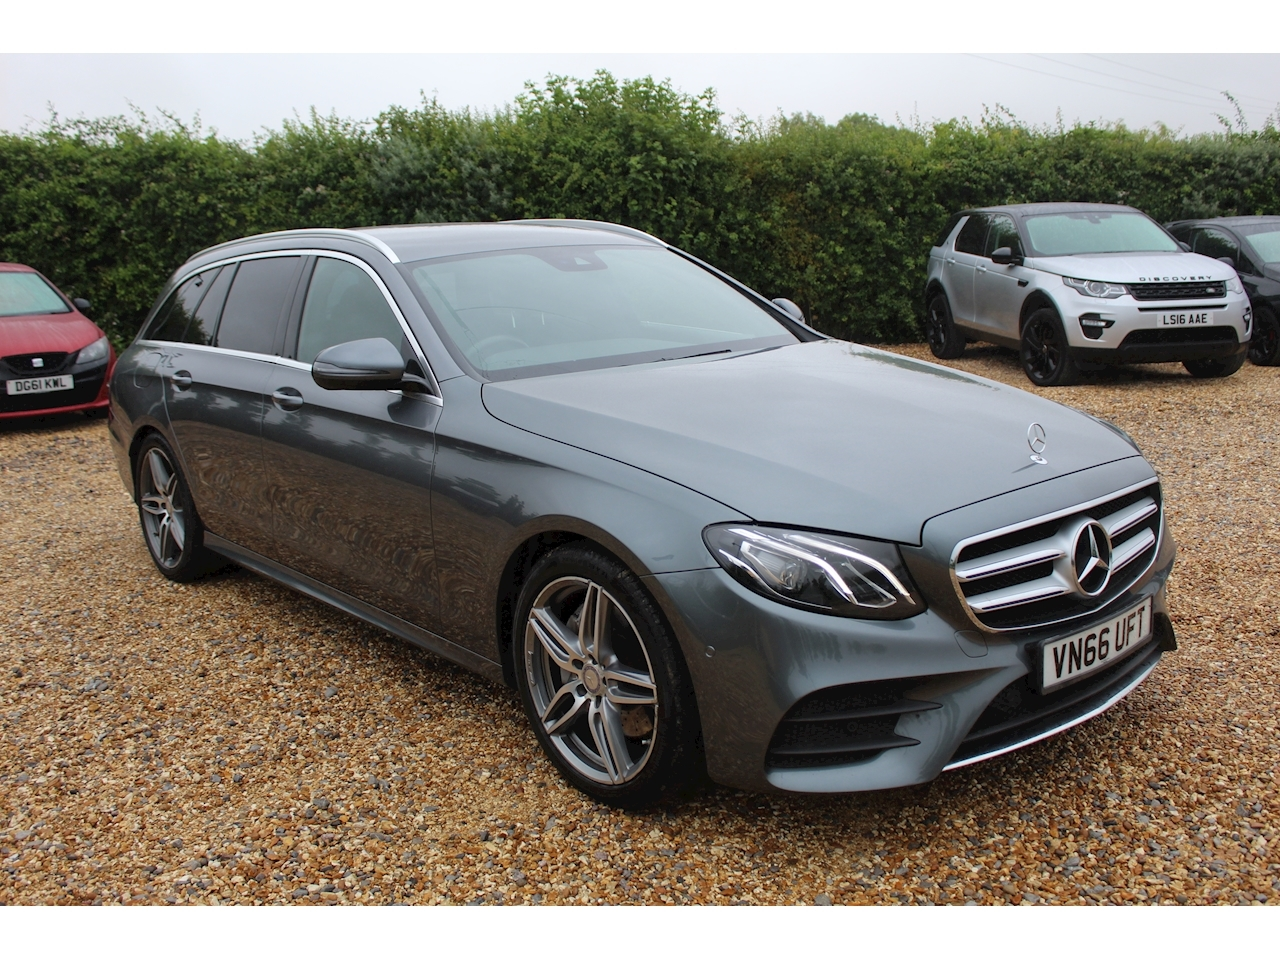 Mercedes-Benz E Class E 220 D Amg Line Estate 2.0 Automatic Diesel